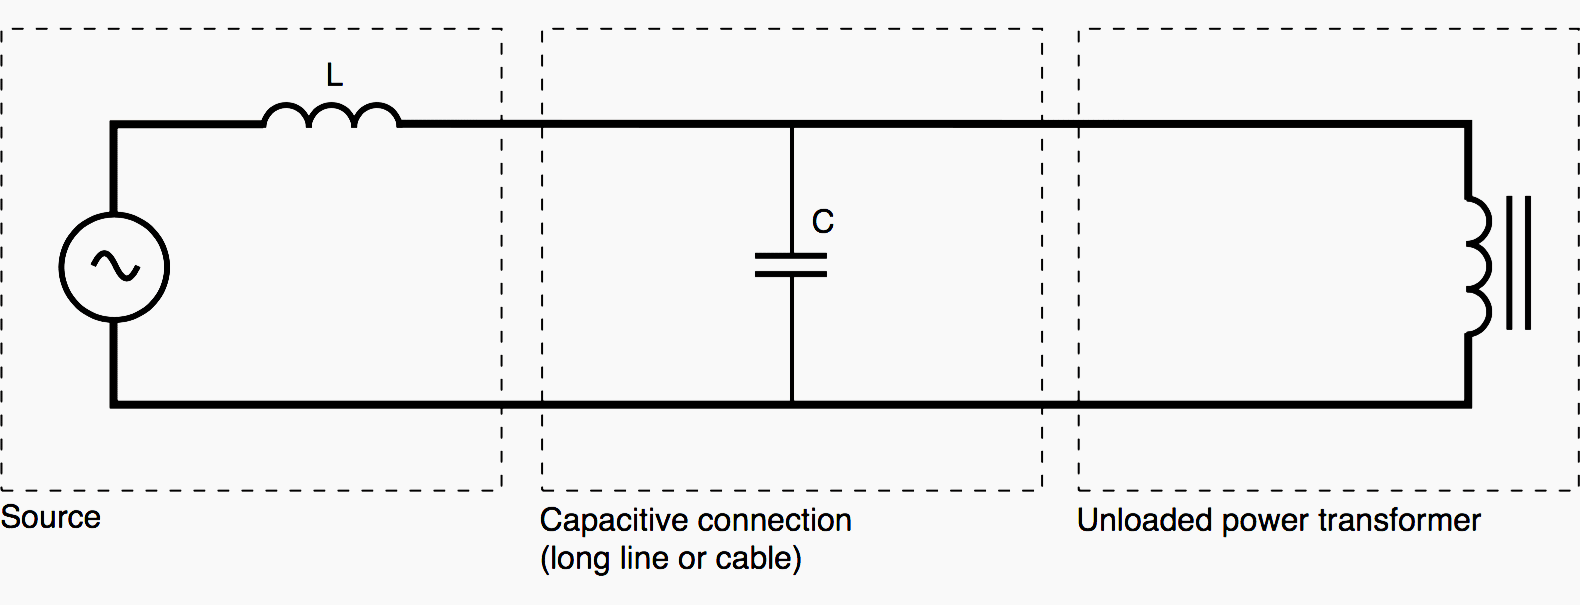 Equivalent diagram of unloaded power transformer supplied by a capacitive system